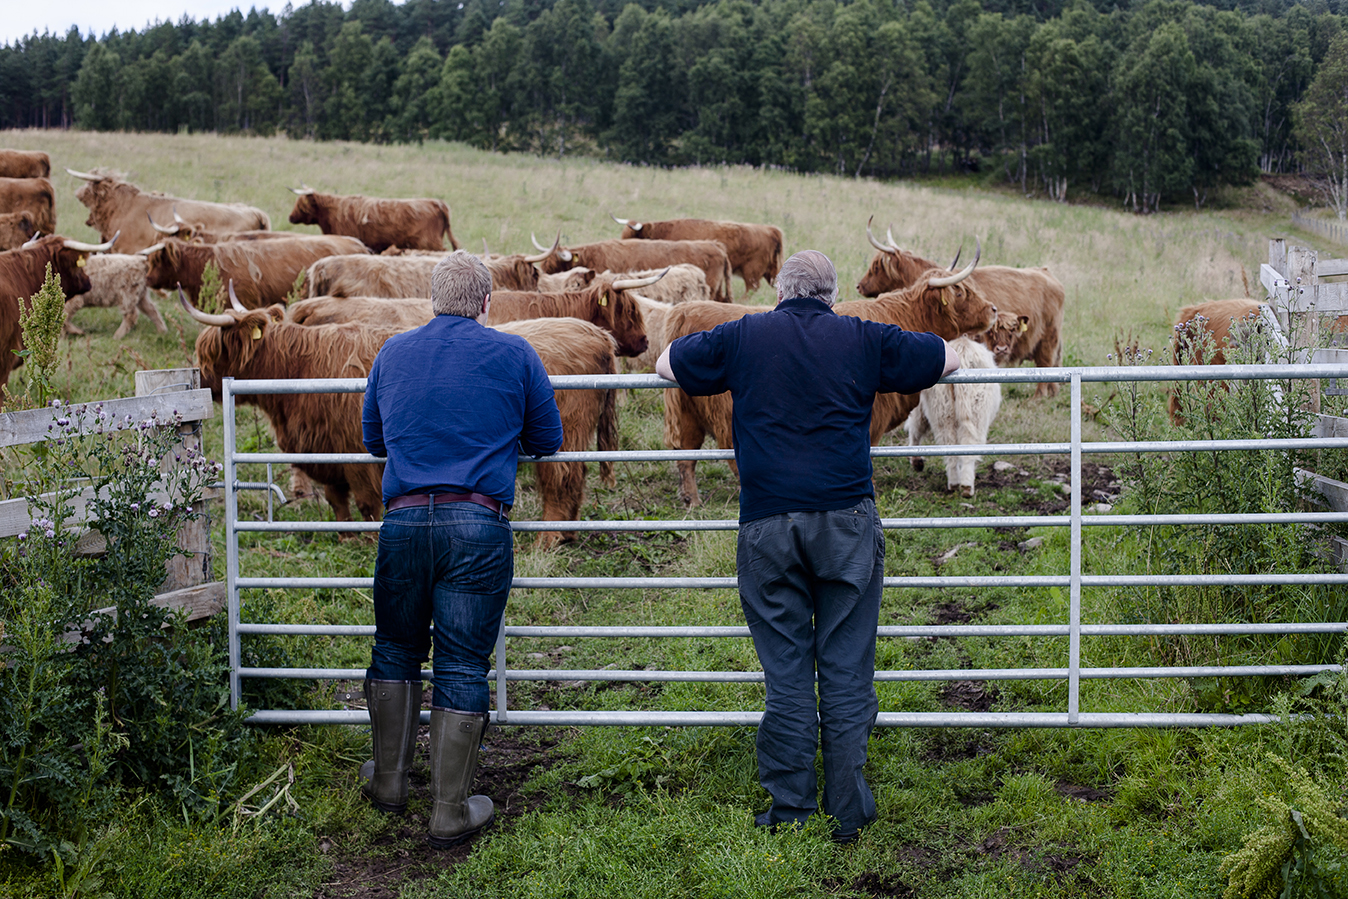 Two farmers lean on a gate, watching cattle.